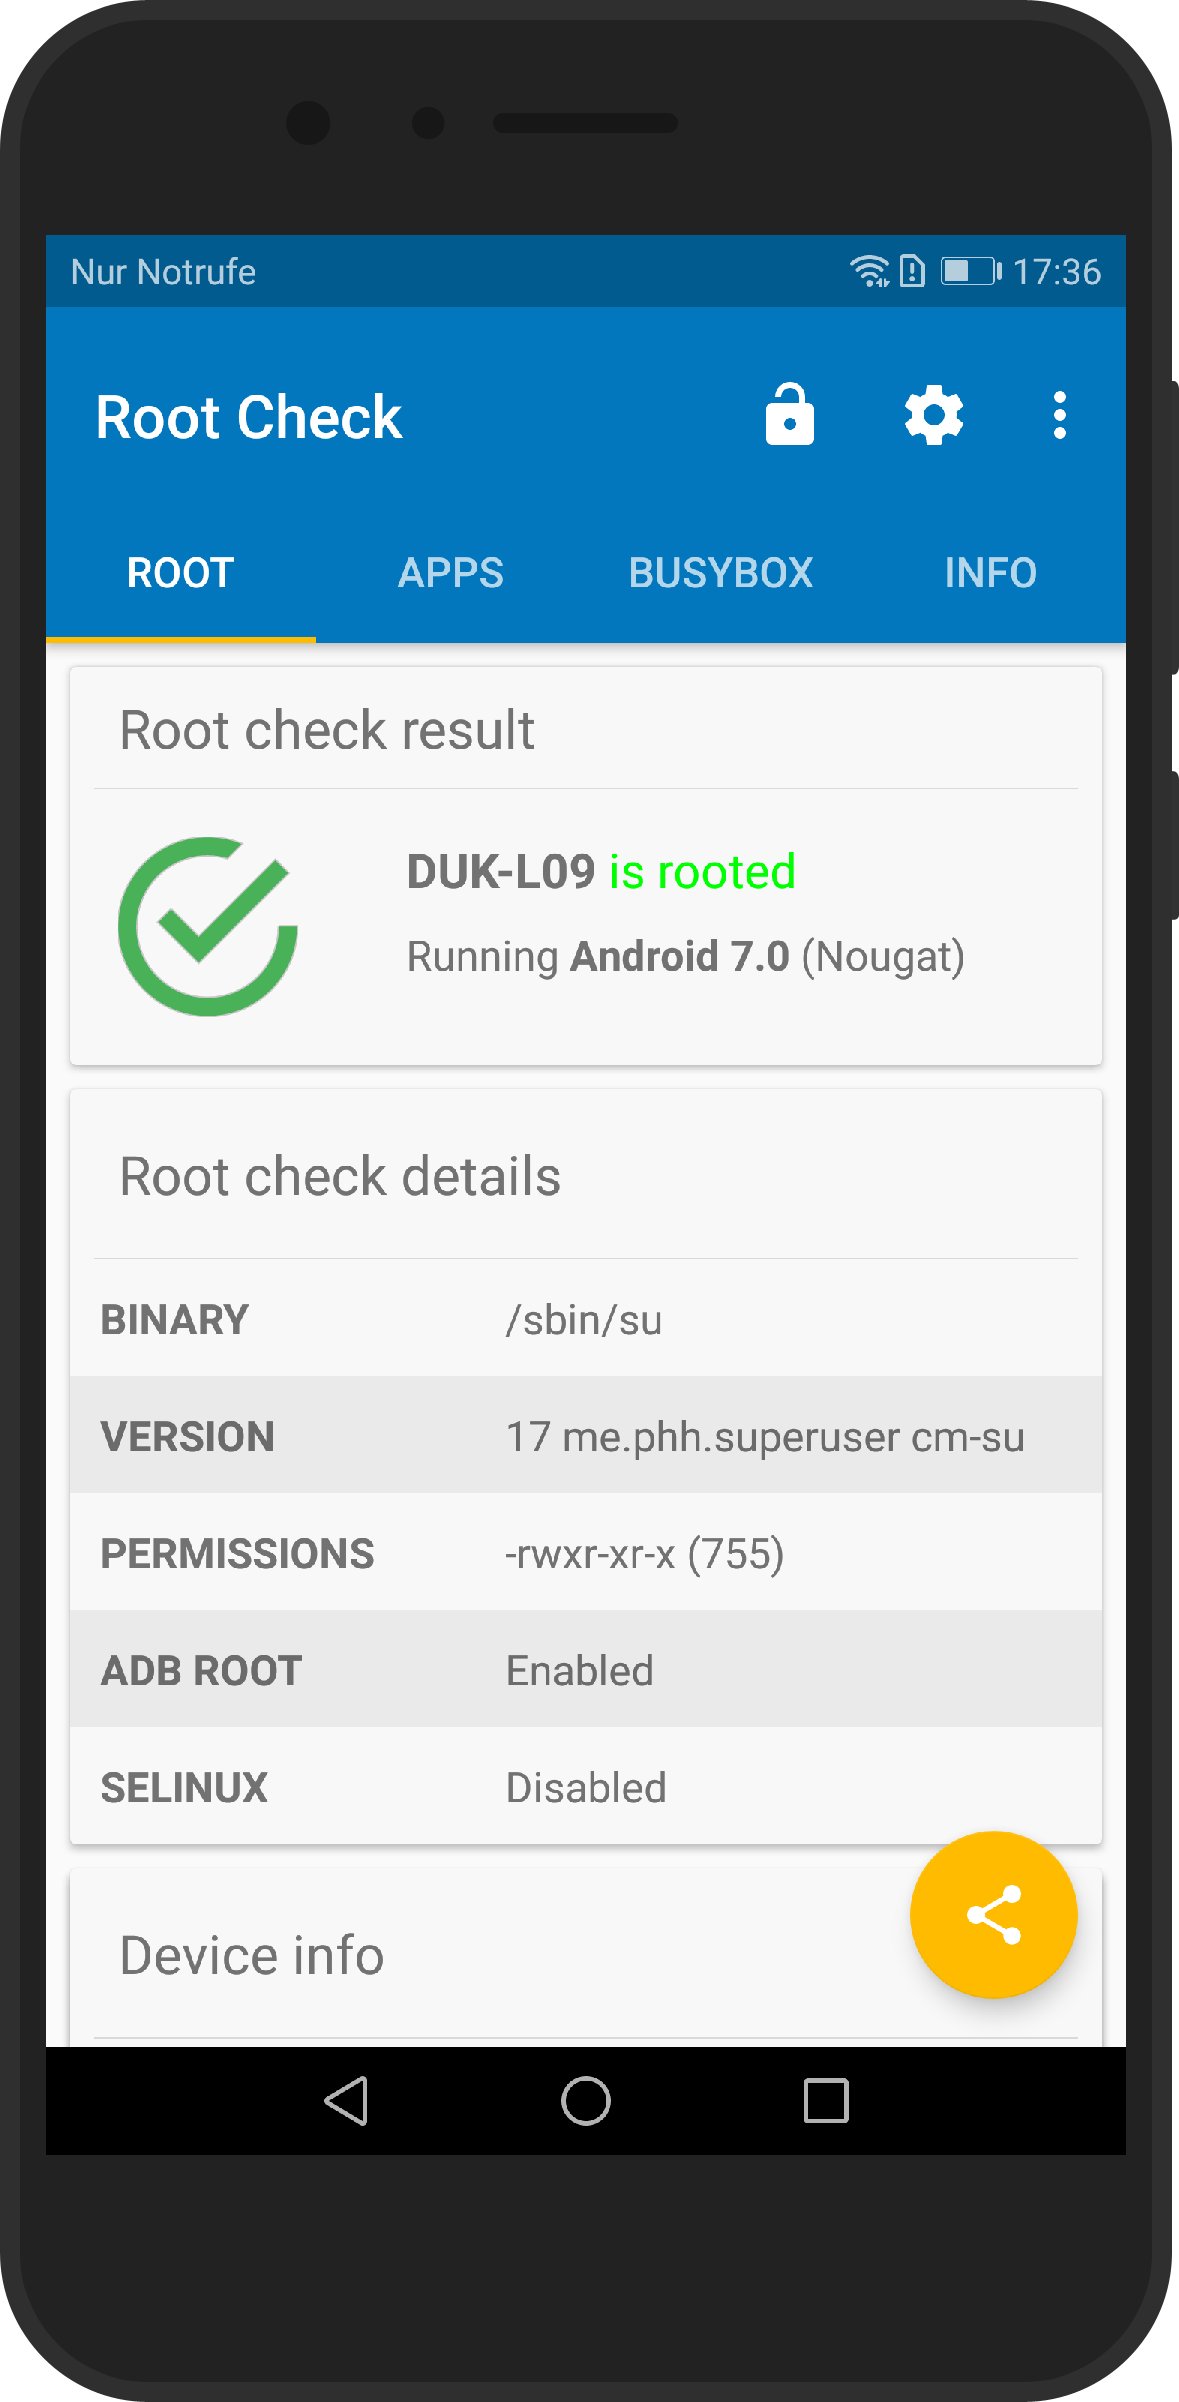 Honor P8 Pro rooted